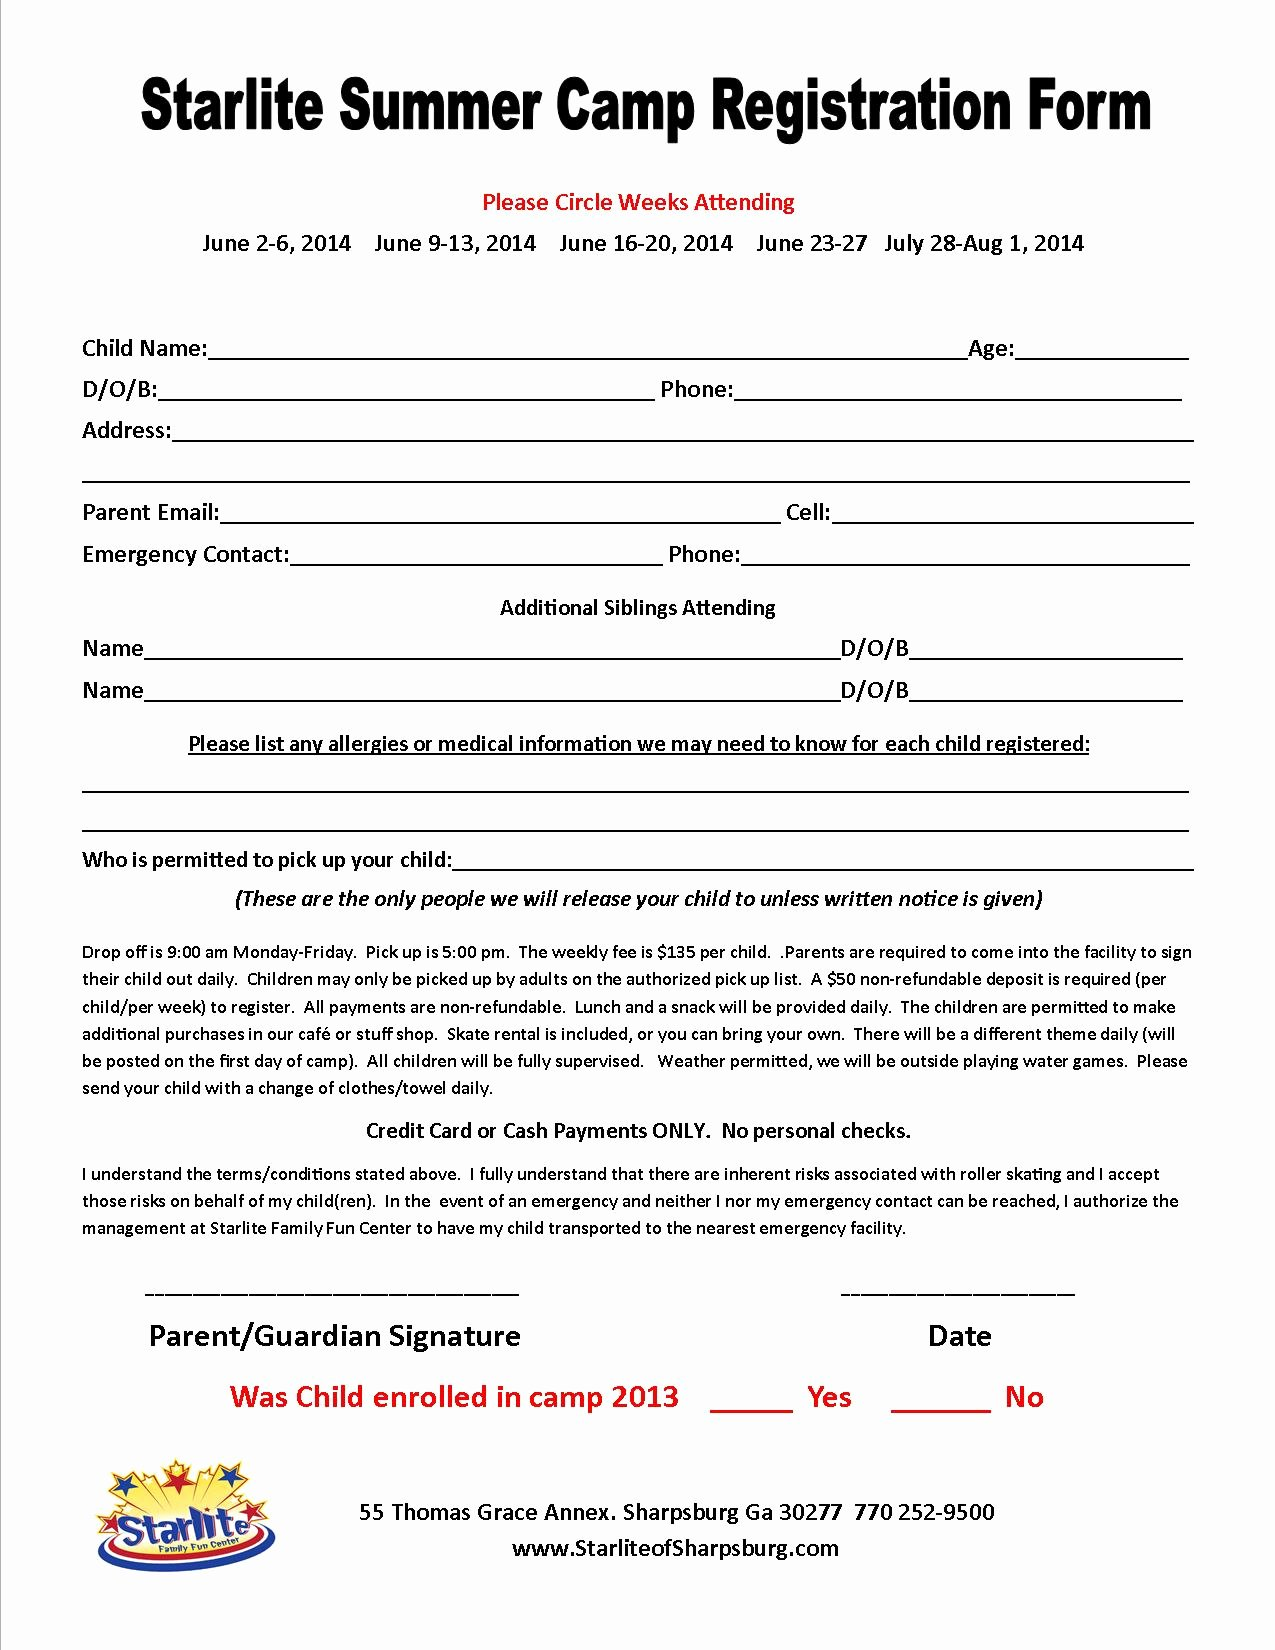 Camp Registration form Template Fresh Great Camp Registration form Template S Free Camp